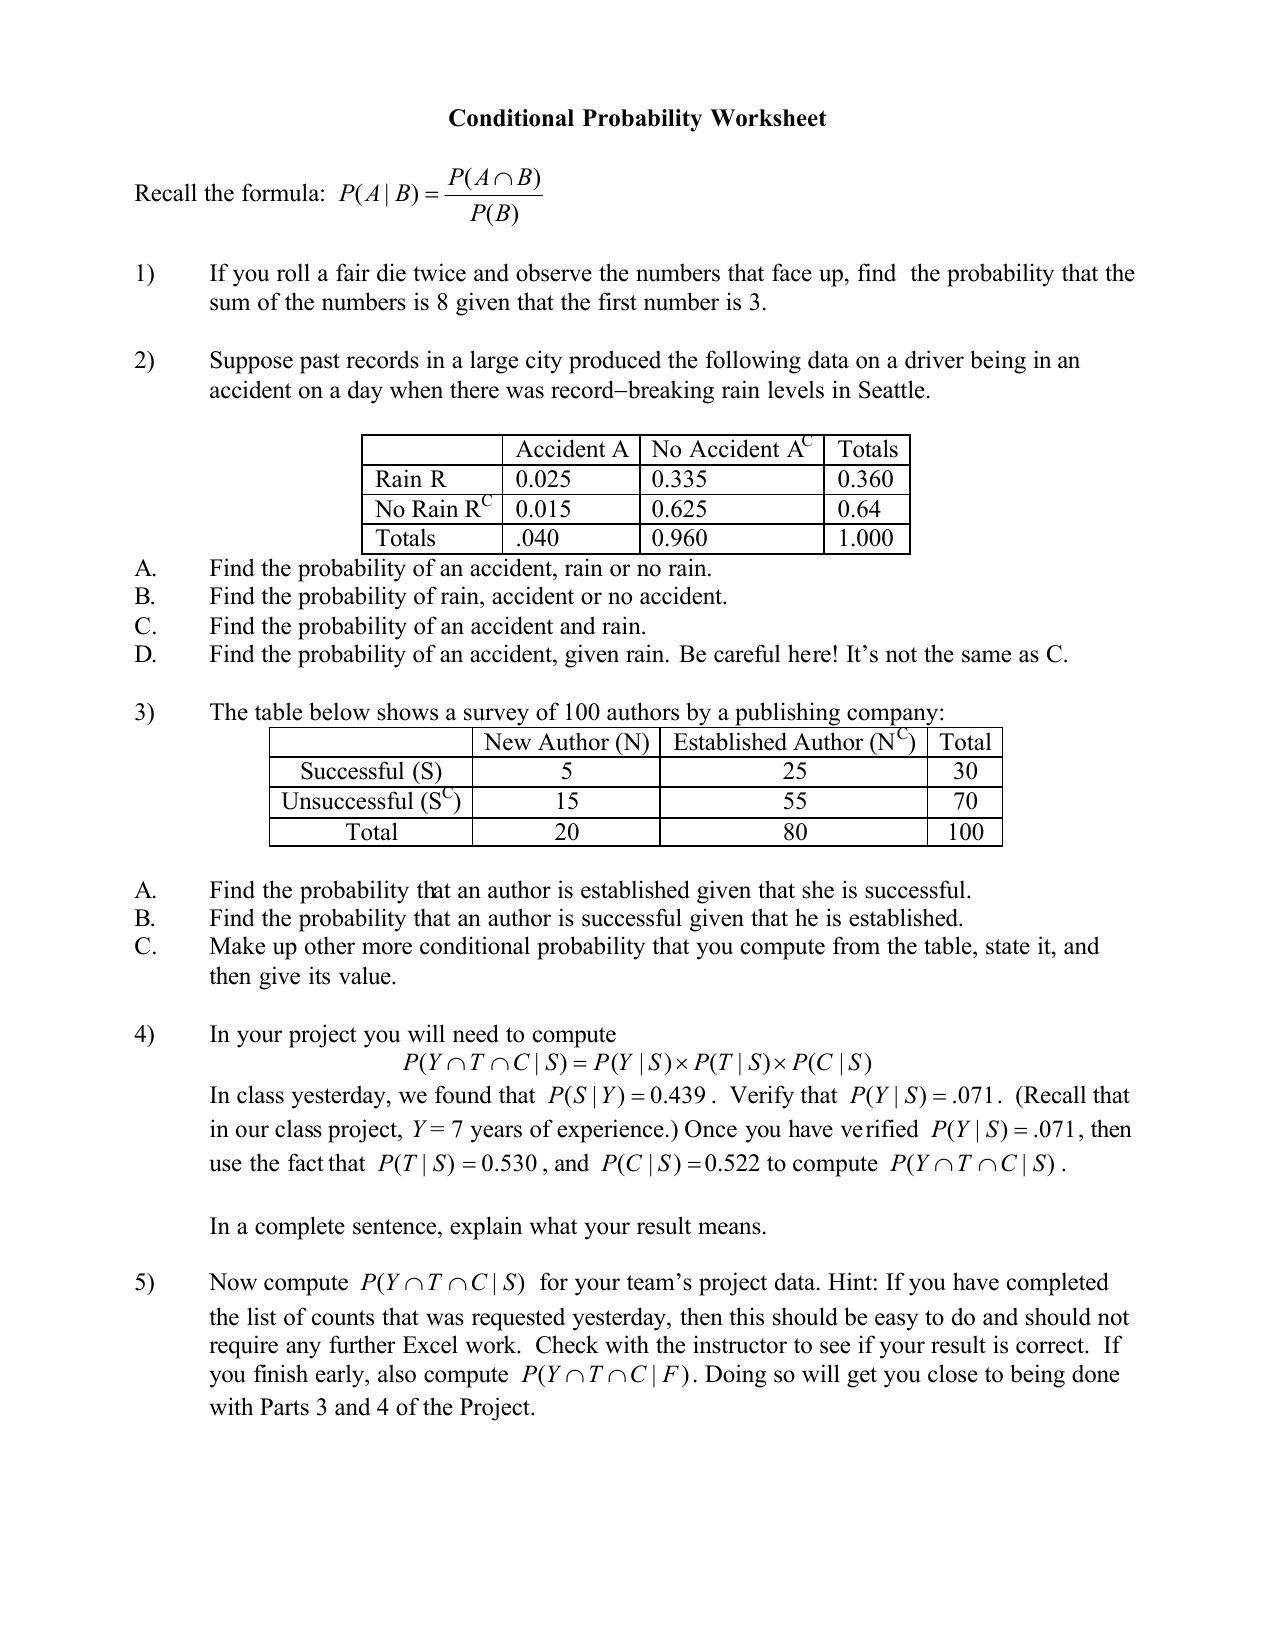 Worksheets Conditional Probability Worksheets conditional probability worksheet 008352557 1 ad2c1b83a42dc4b4288a5d6e348a1590 png